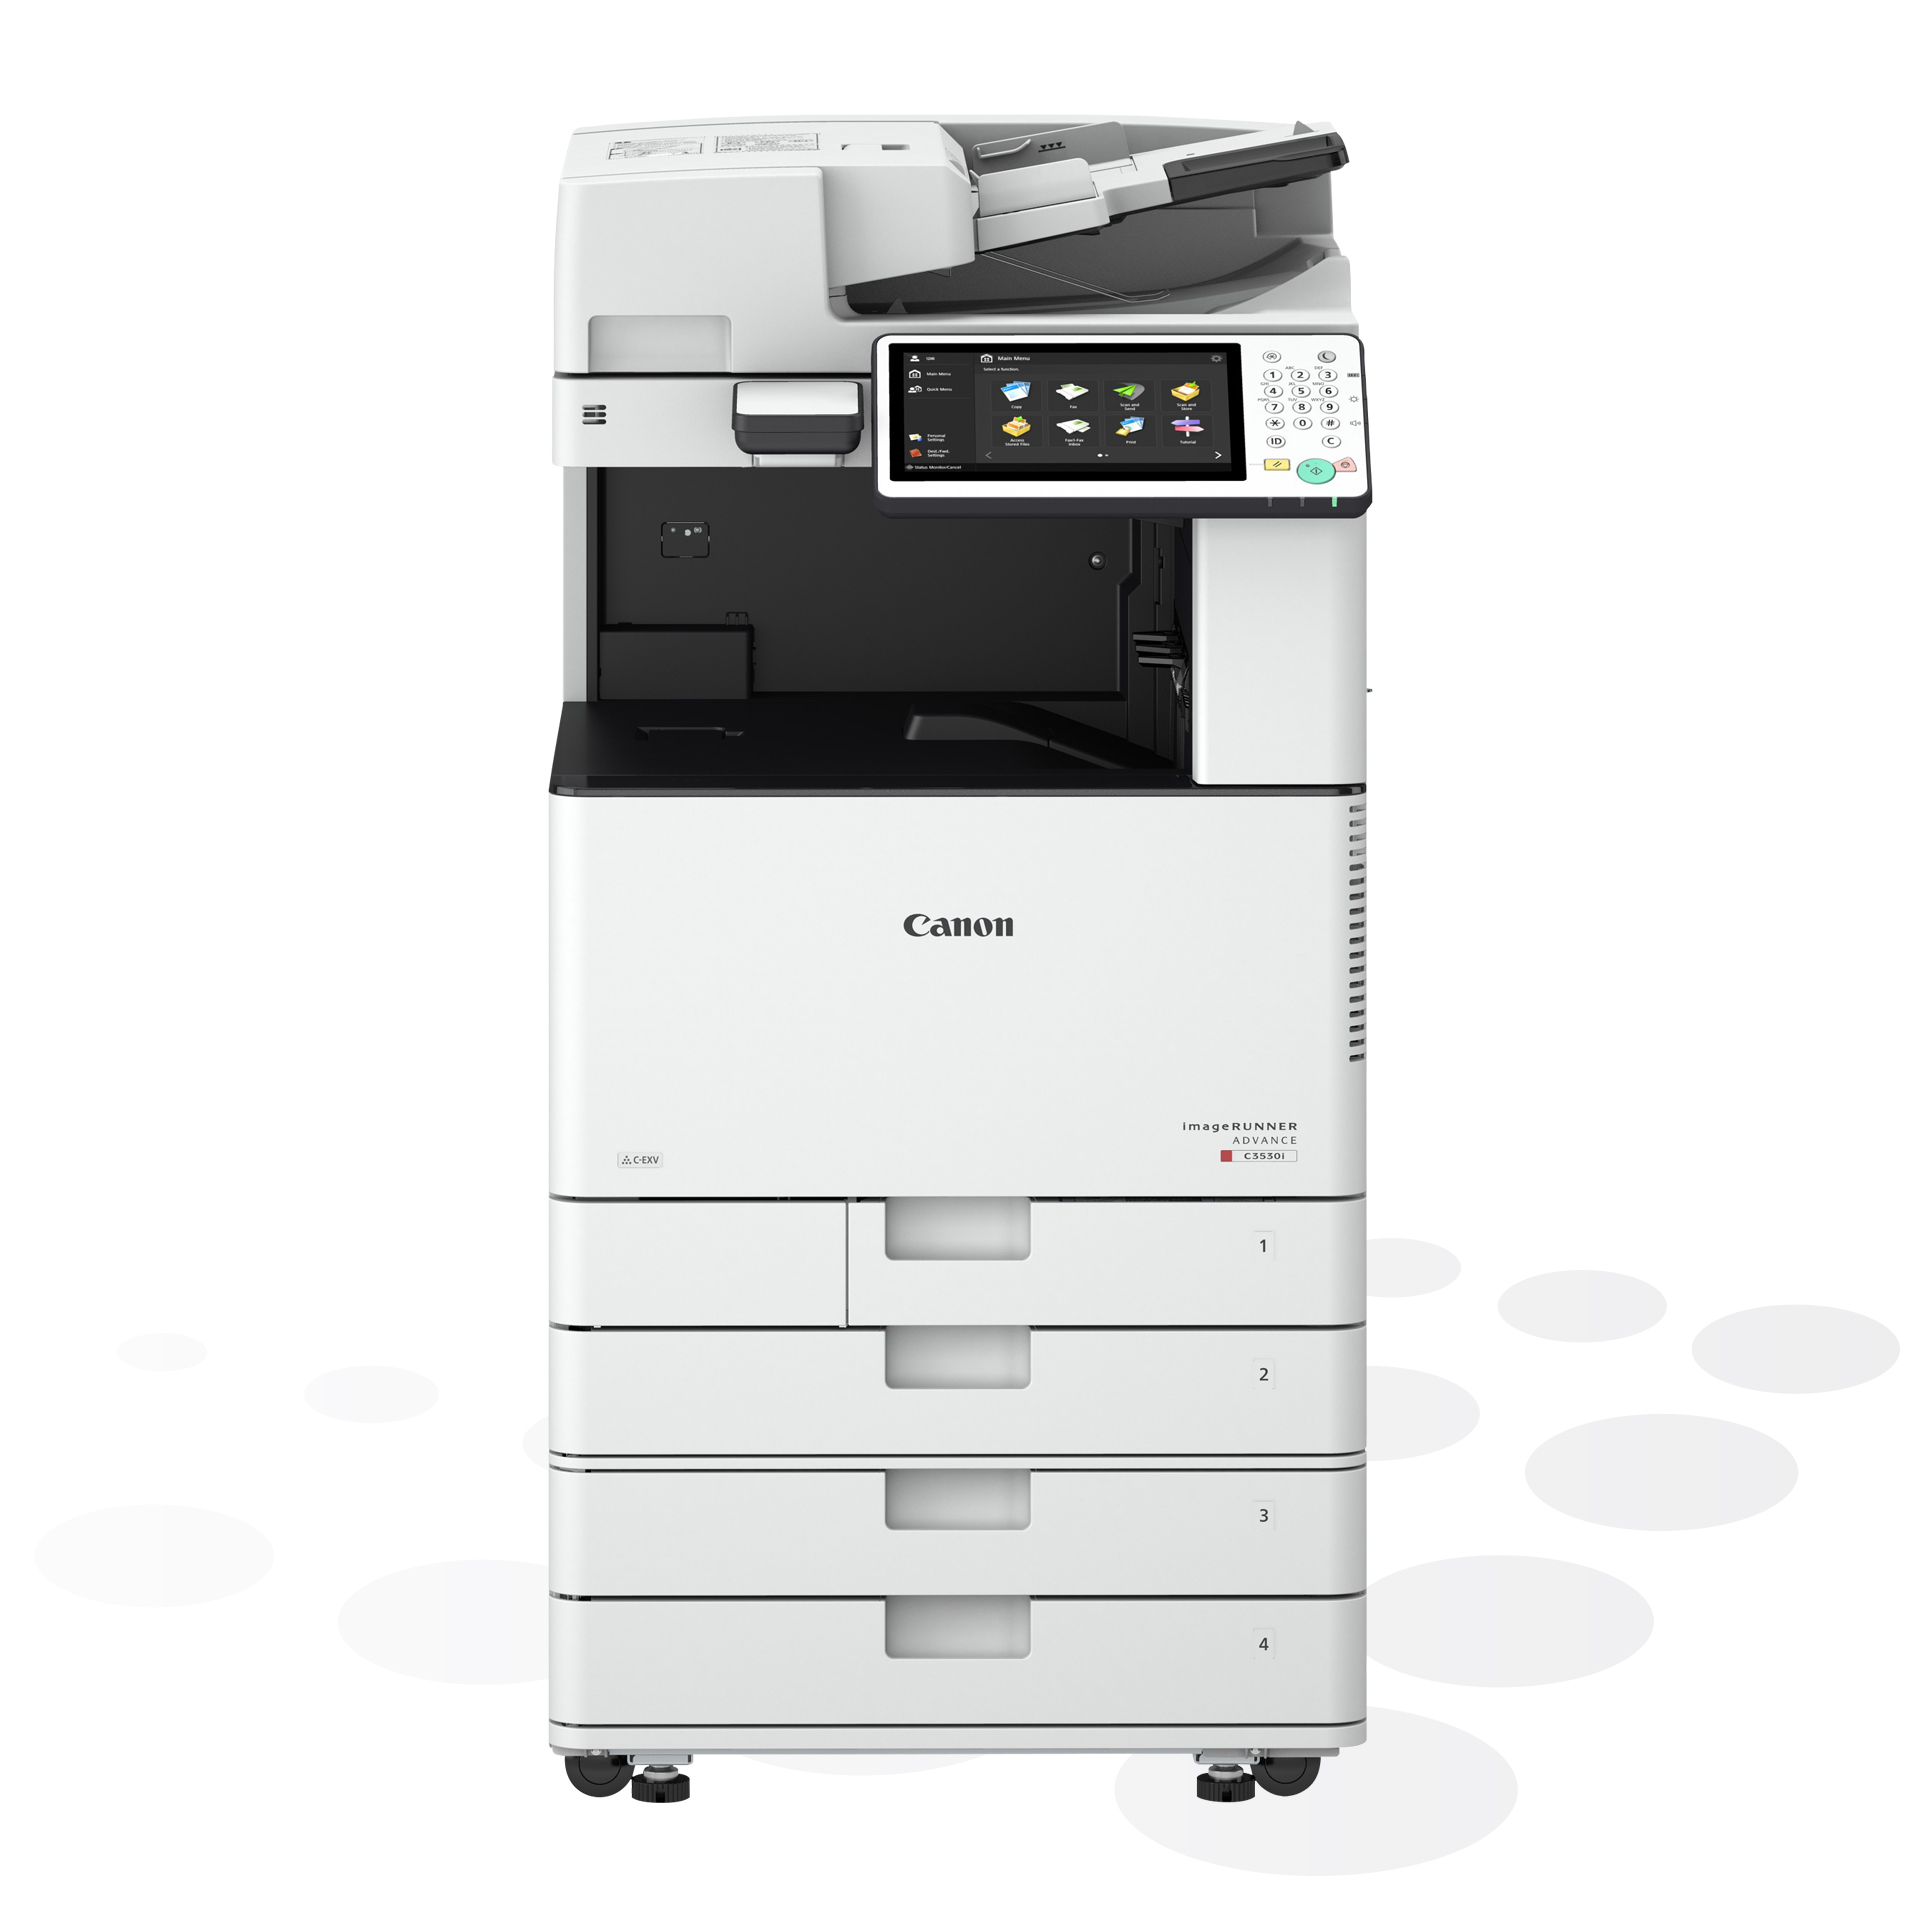 Canon imageRUNNER ADVANCE C3500 Serie Frontansicht